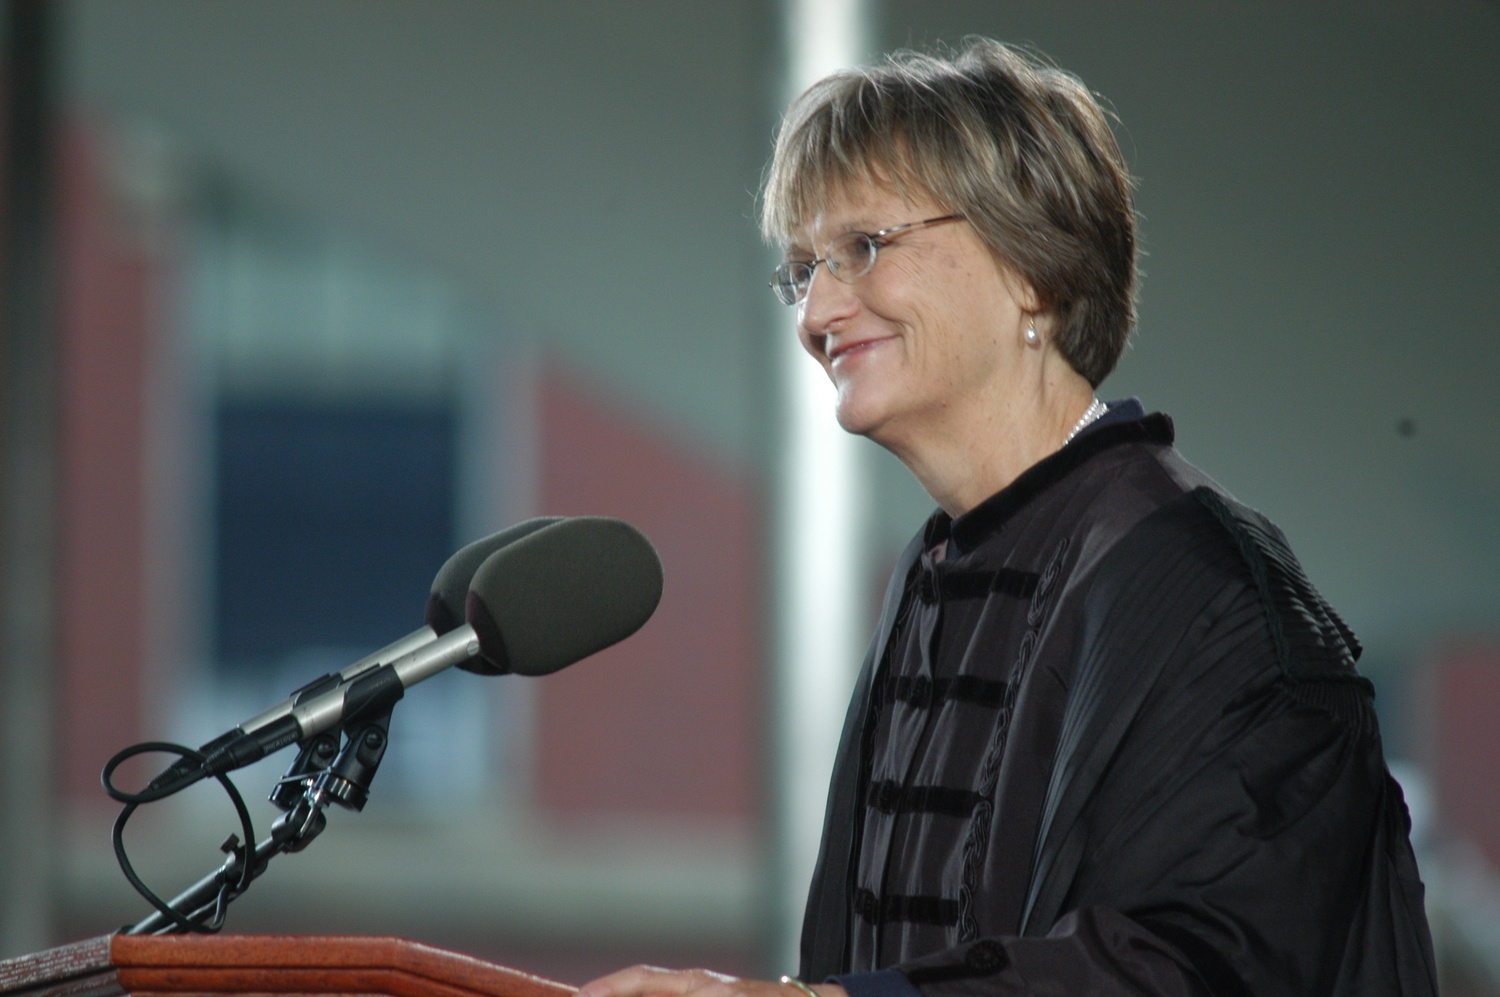 Drew G. Faust is inaugurated as University President in October 2007.